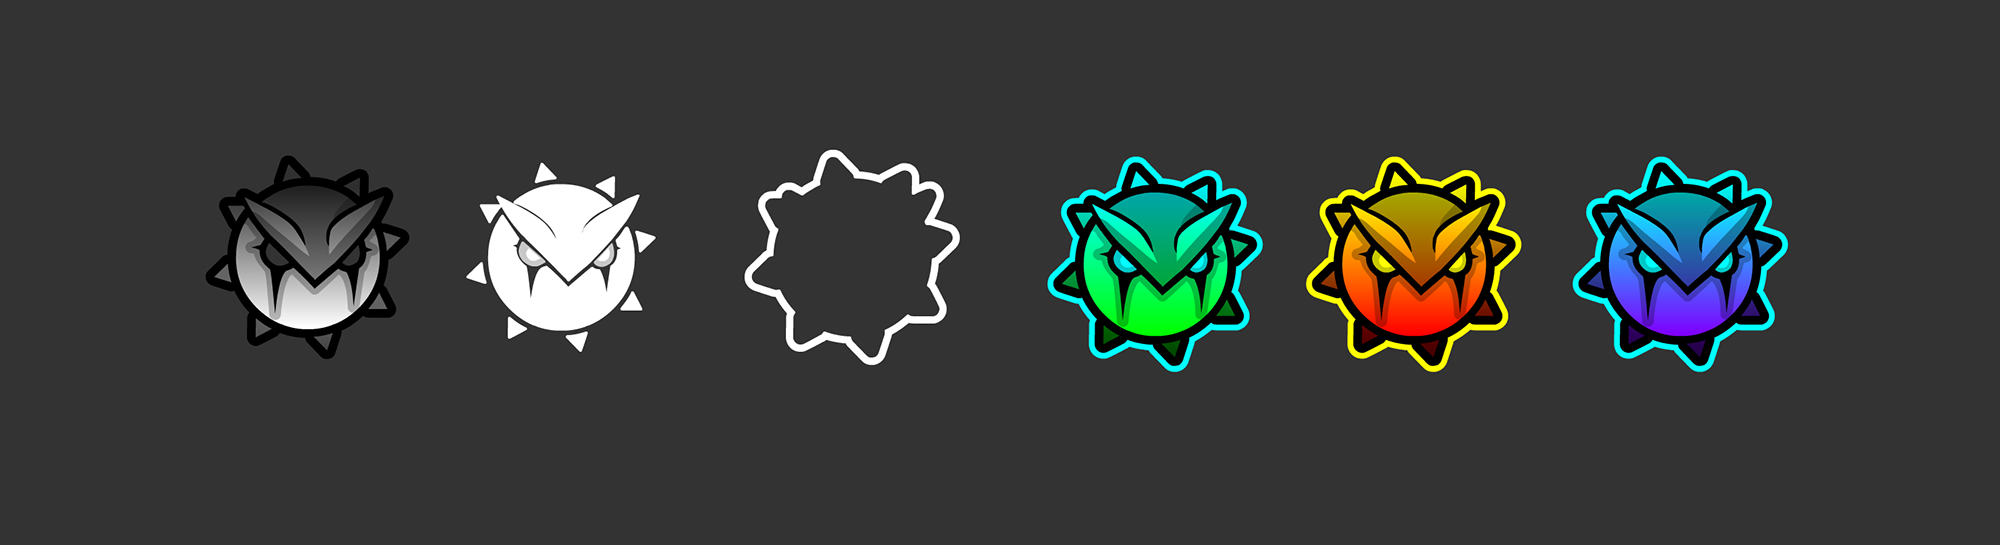 Update2.2IconPreview07.png